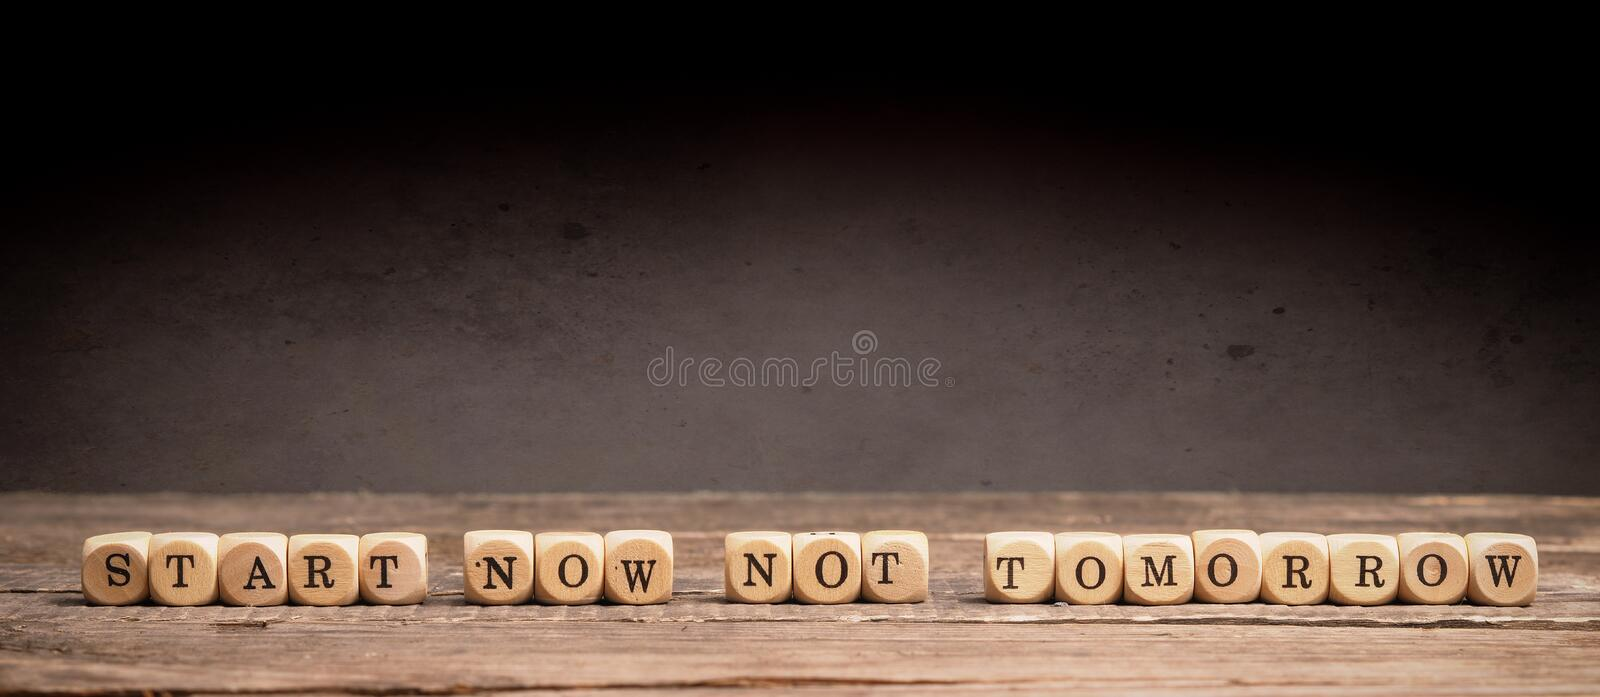 Start now, not tomorrow. Business or New Year resolution concept with small wooden dices and the words Start now not tomorrow royalty free stock image